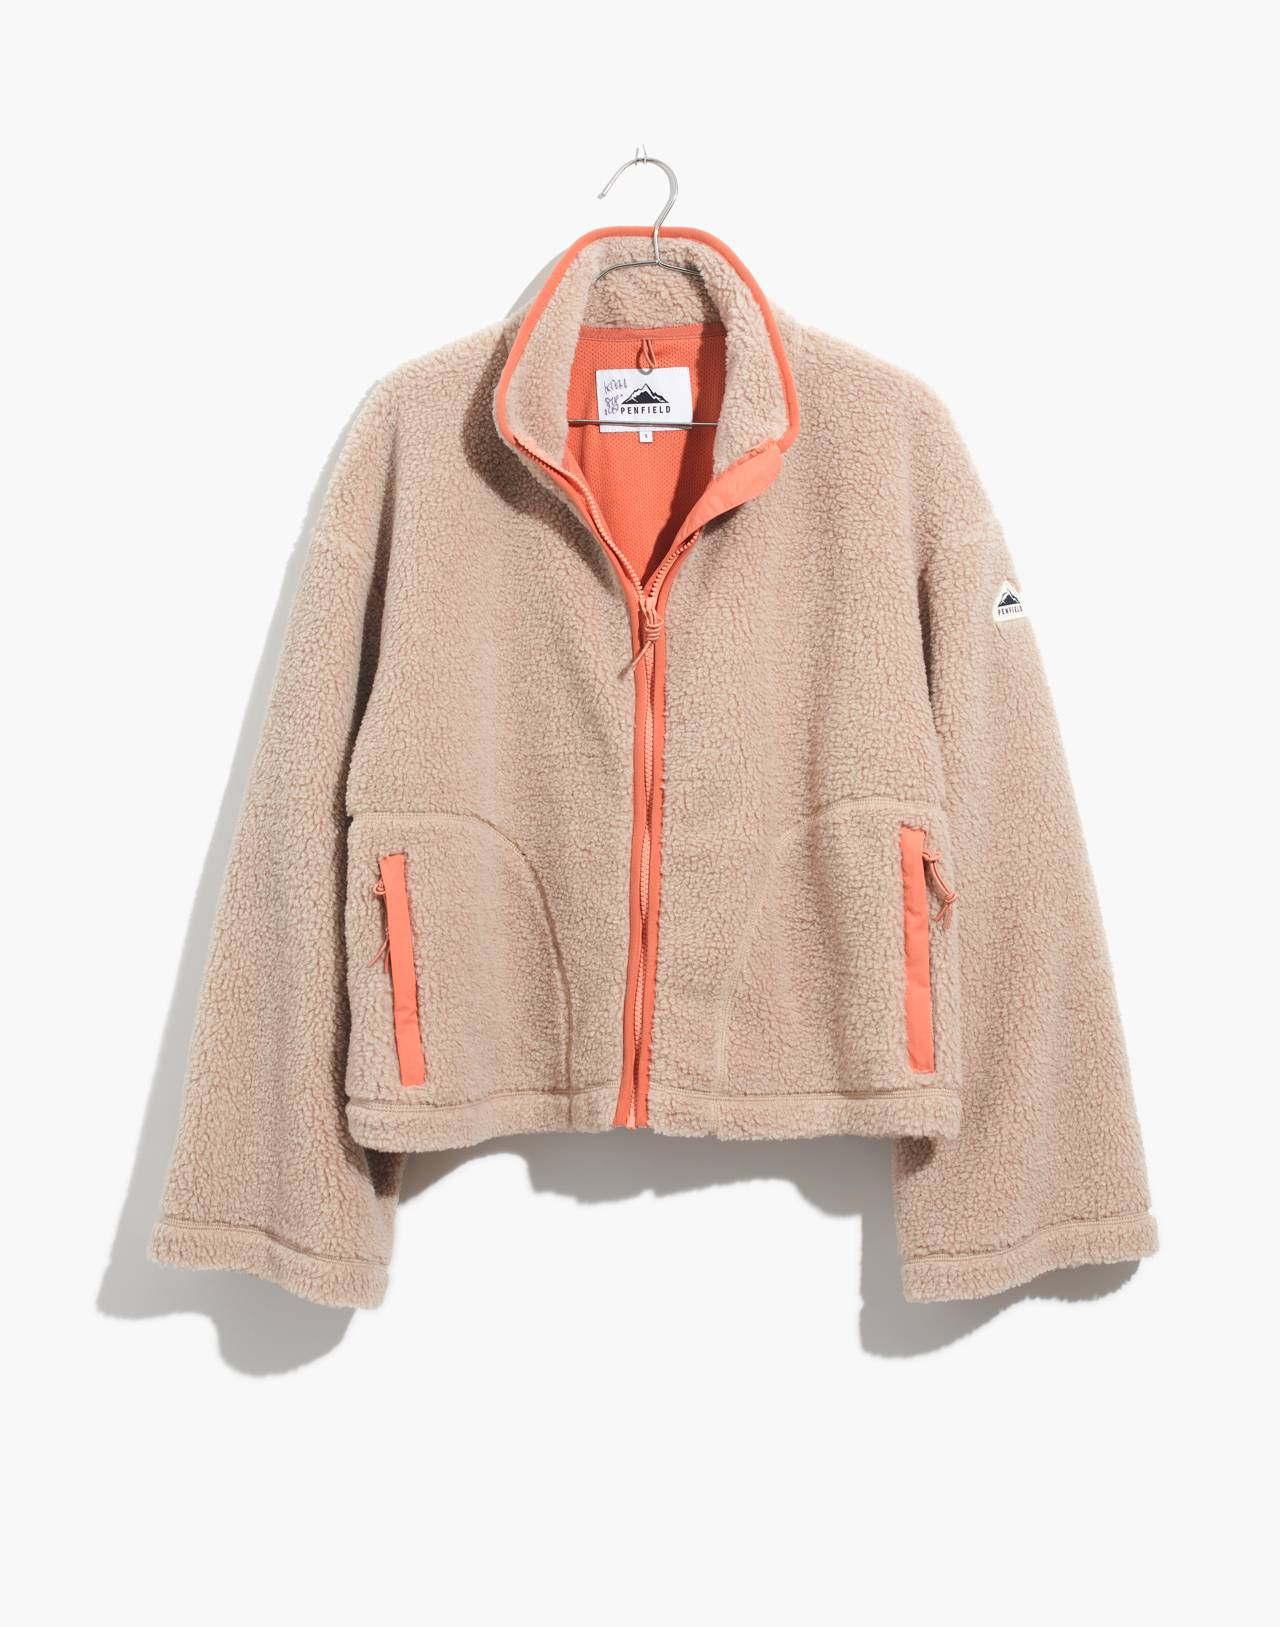 Madewell x Penfield® Haight Fleece Jacket in ivory pink image 4